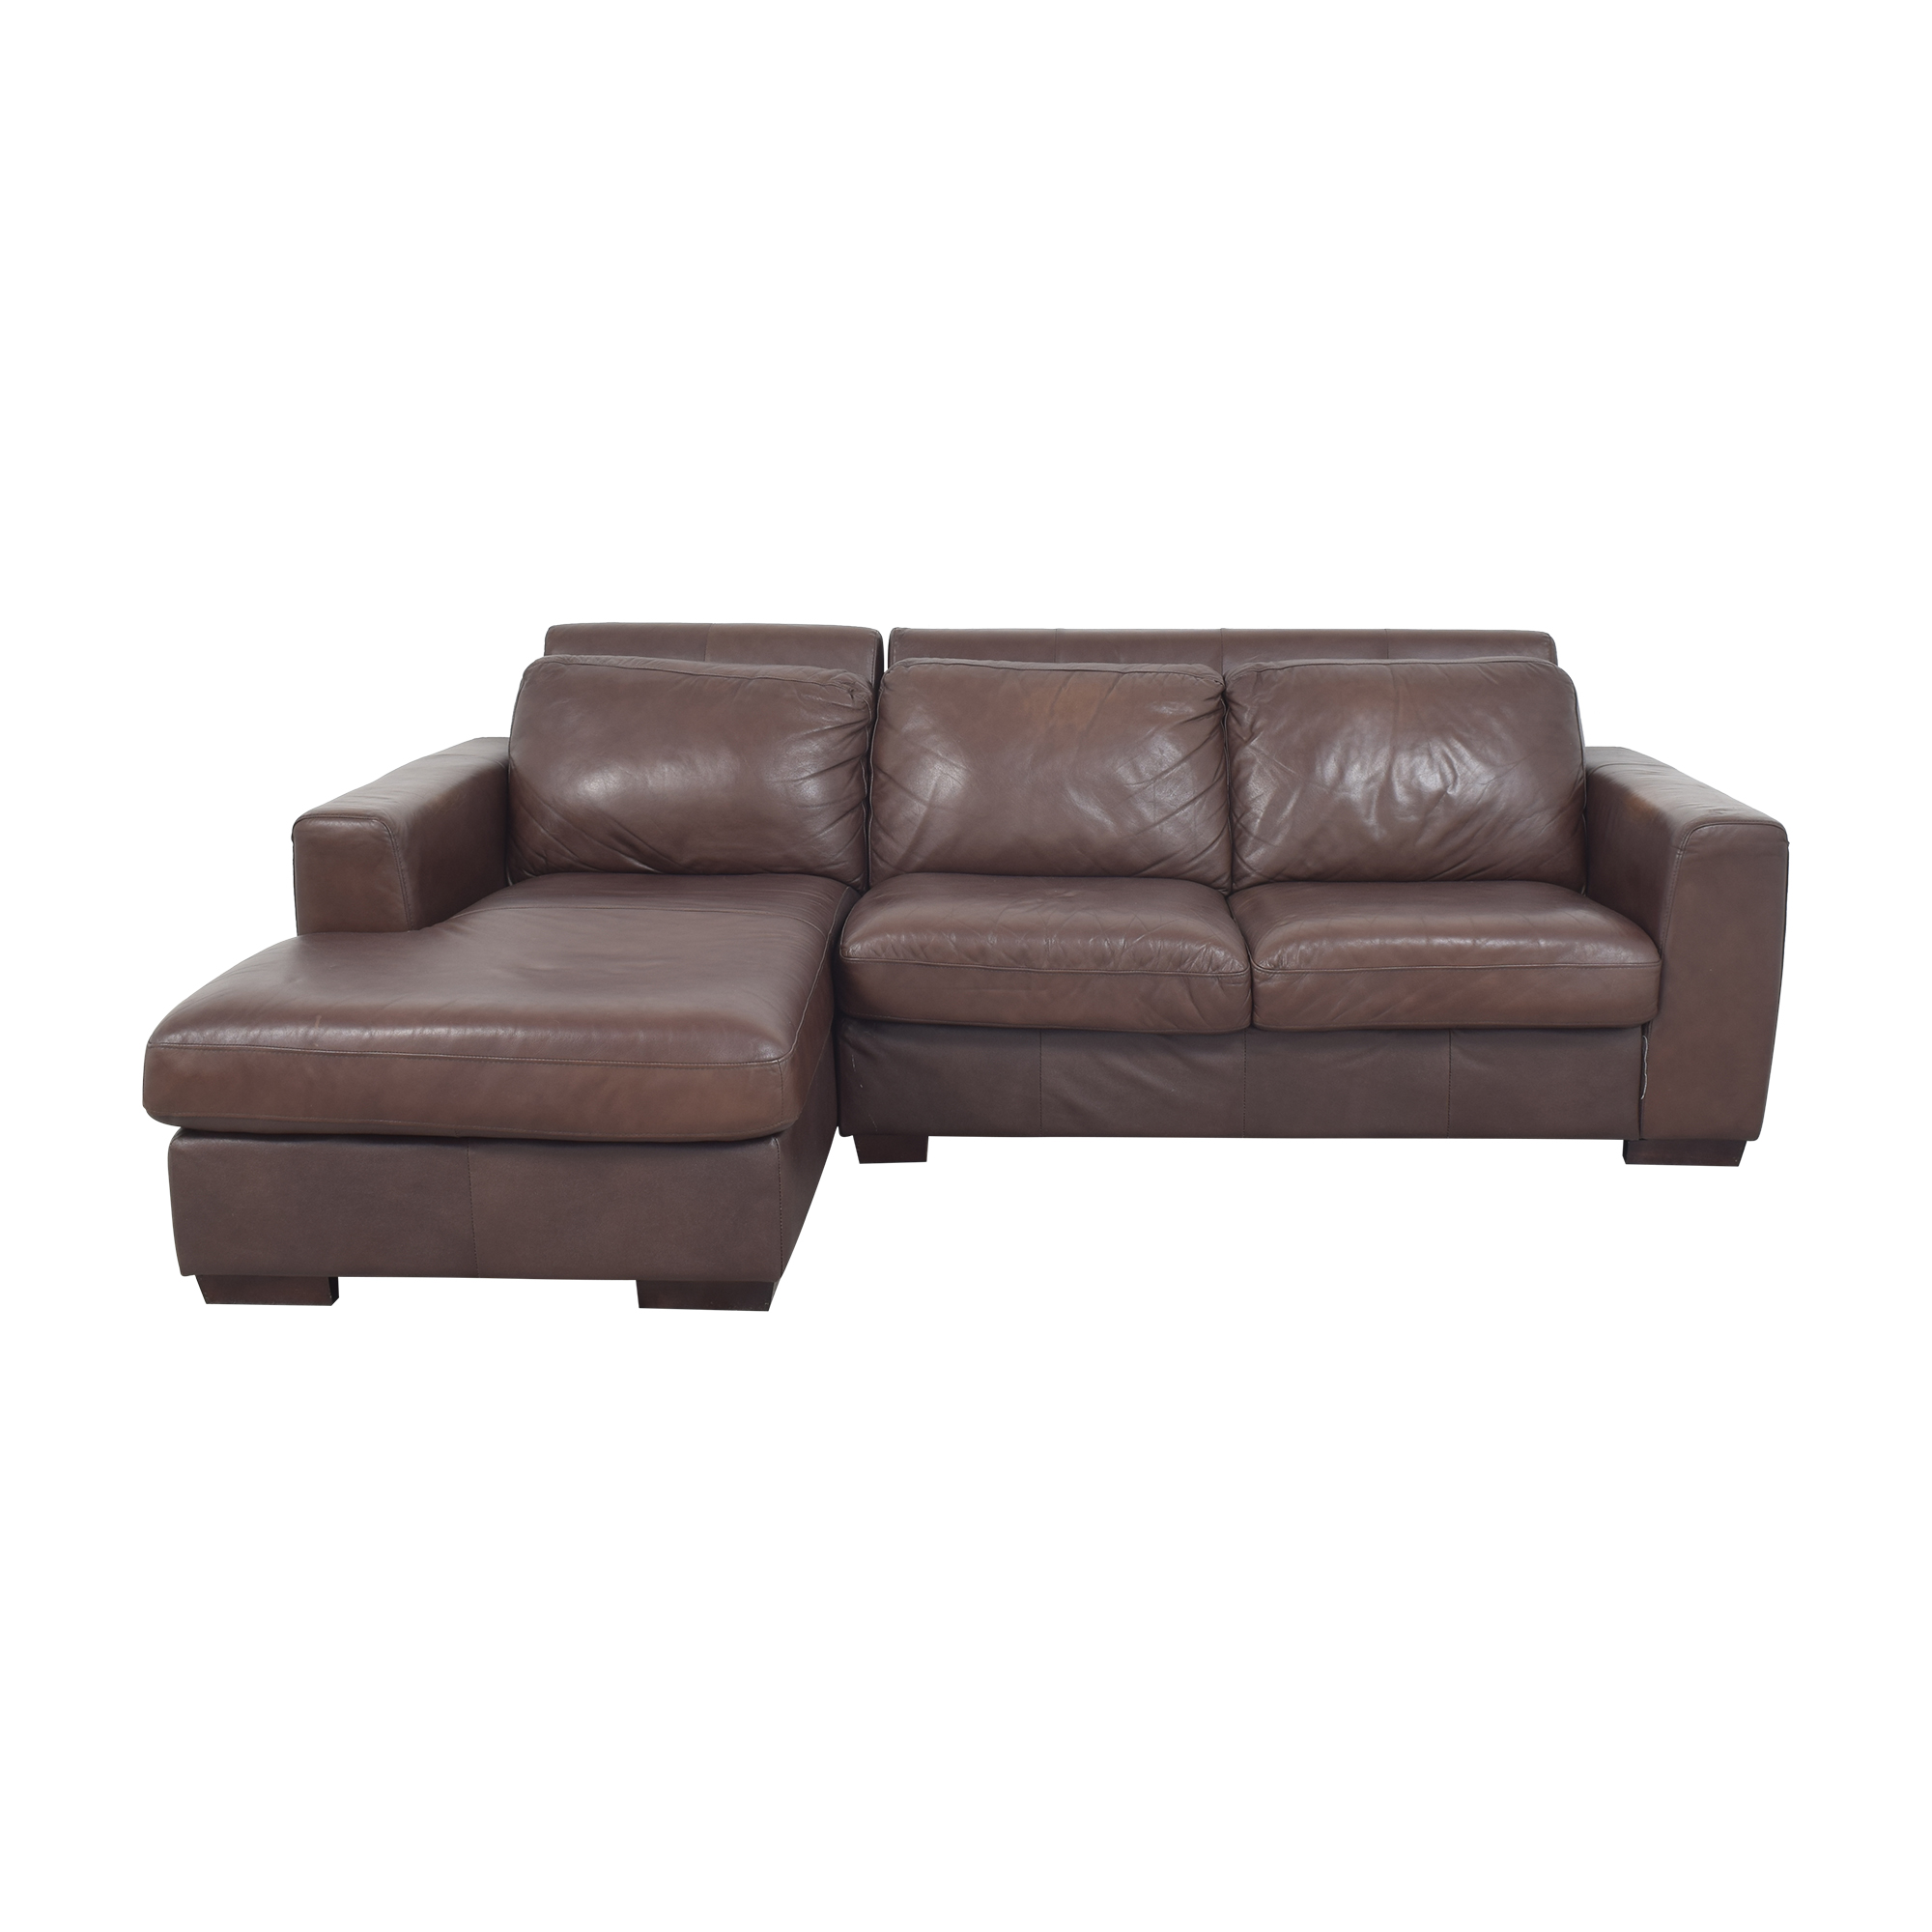 Costco Costco Layla Sectional Sofa with Ottoman second hand